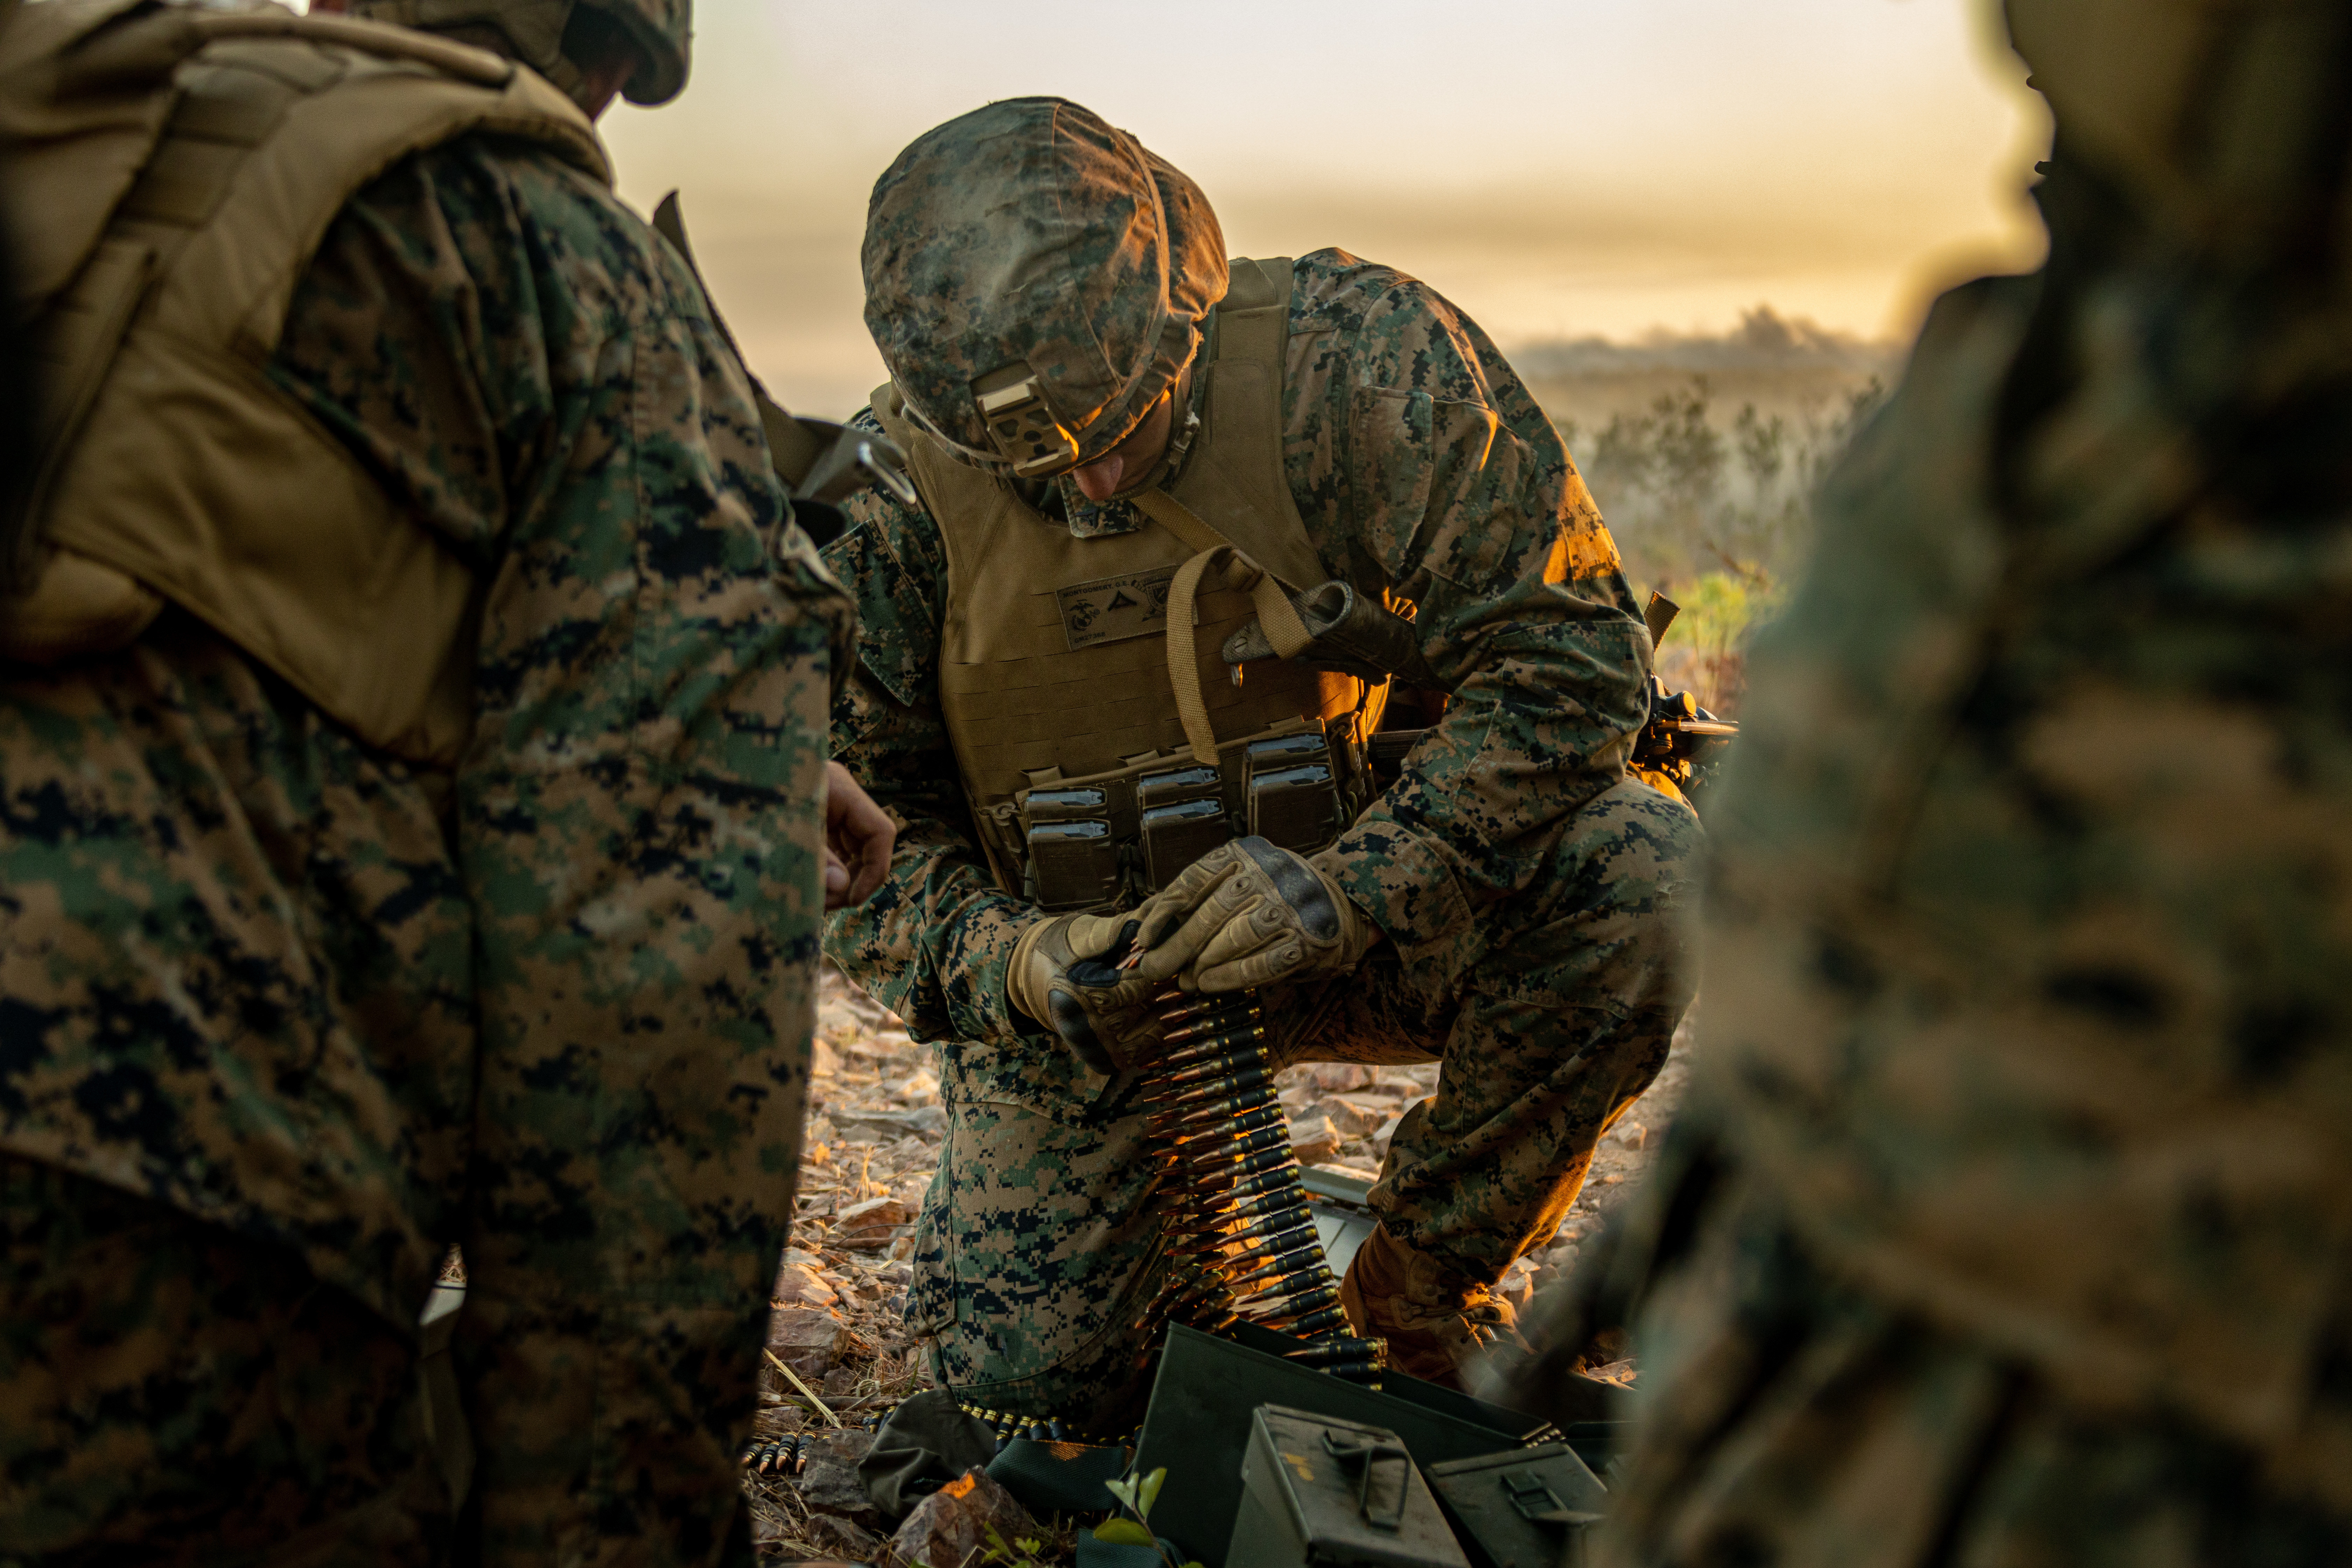 Marine Lance Cpl. Gavin Montgomery, a machine gunner in Combined Anti-armor Team Blue Platoon, with Weapons Company, 1st Battalion, 7th Marine Regiment (Reinforced), Marine Rotational Force–Darwin, prepares ammunition during exercise Southern Jackaroo at Mount Bundey Training Area, NT, Australia, June 23. (Cpl. Sarah Taggett/Marine Corps)